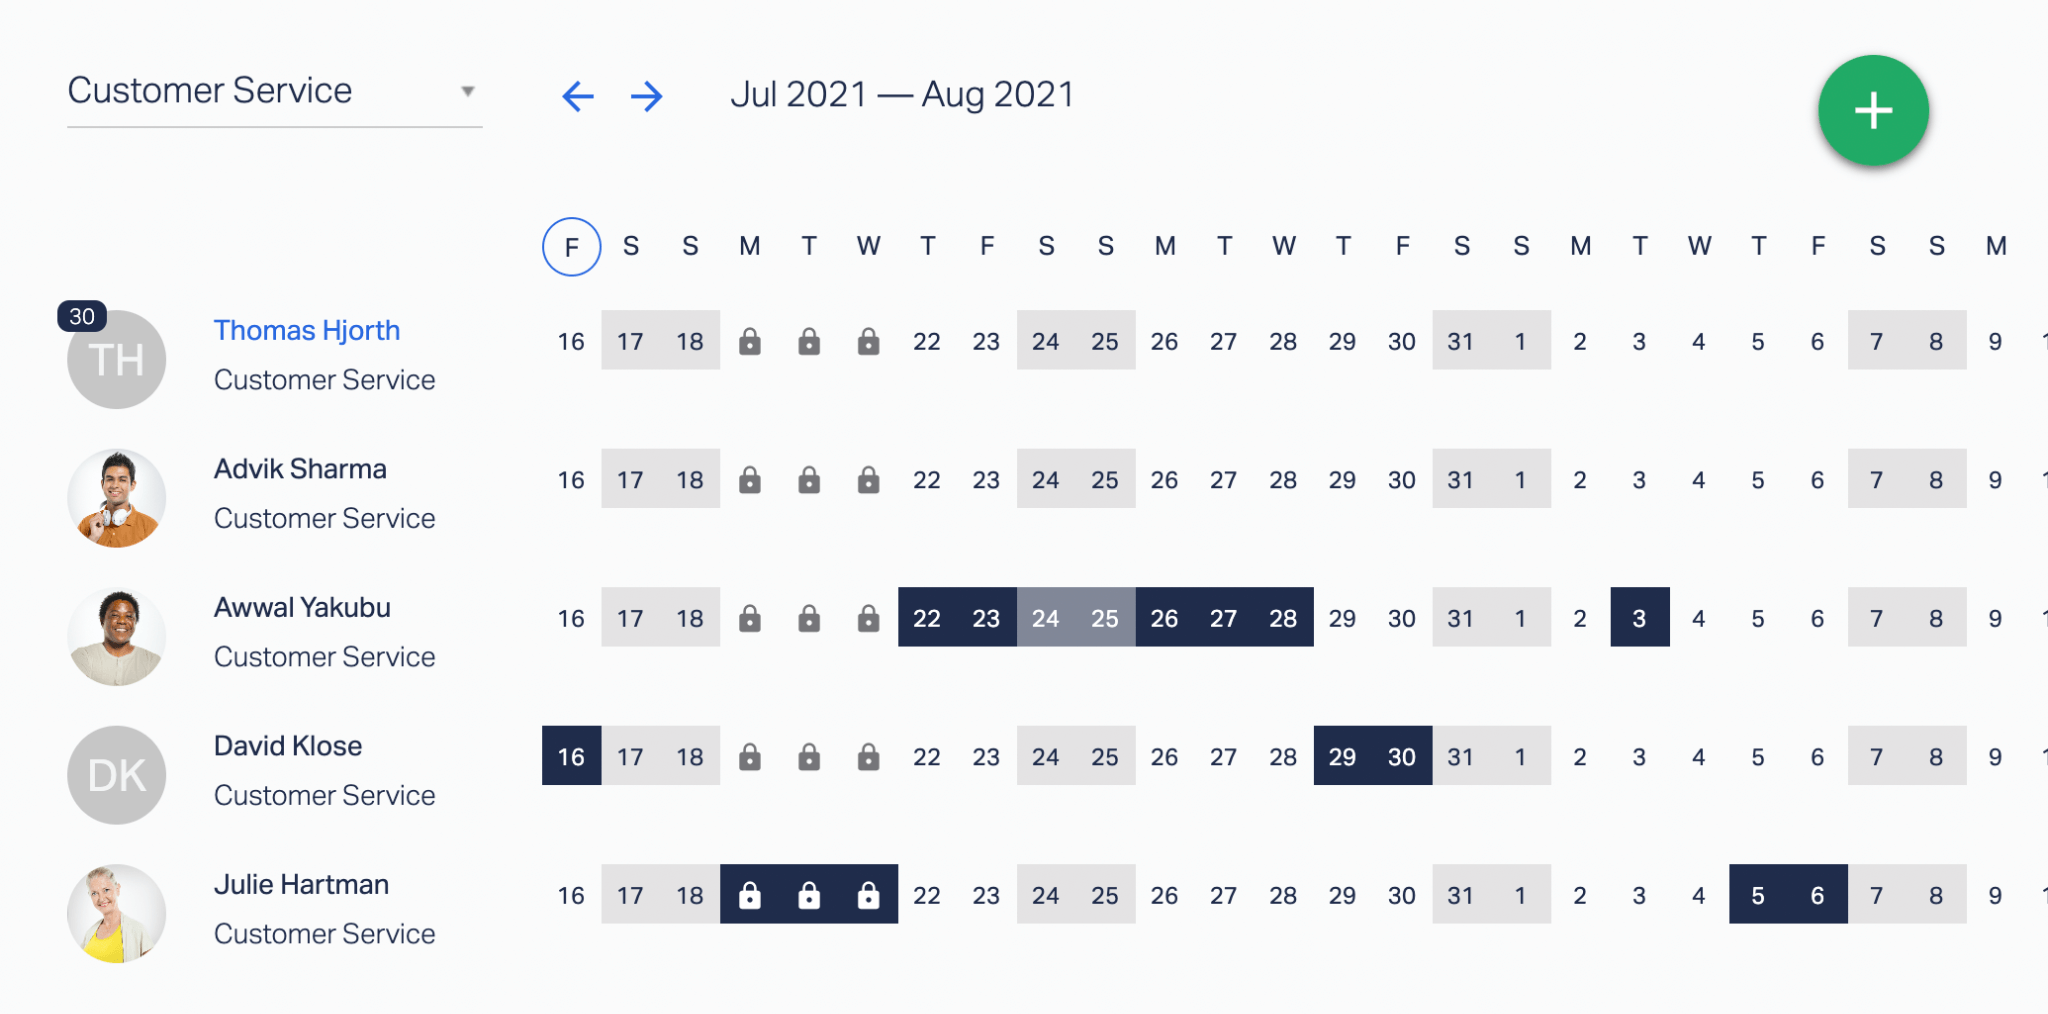 A preview of a Customer Service team calendar for June and July 2021 in Timetastic.